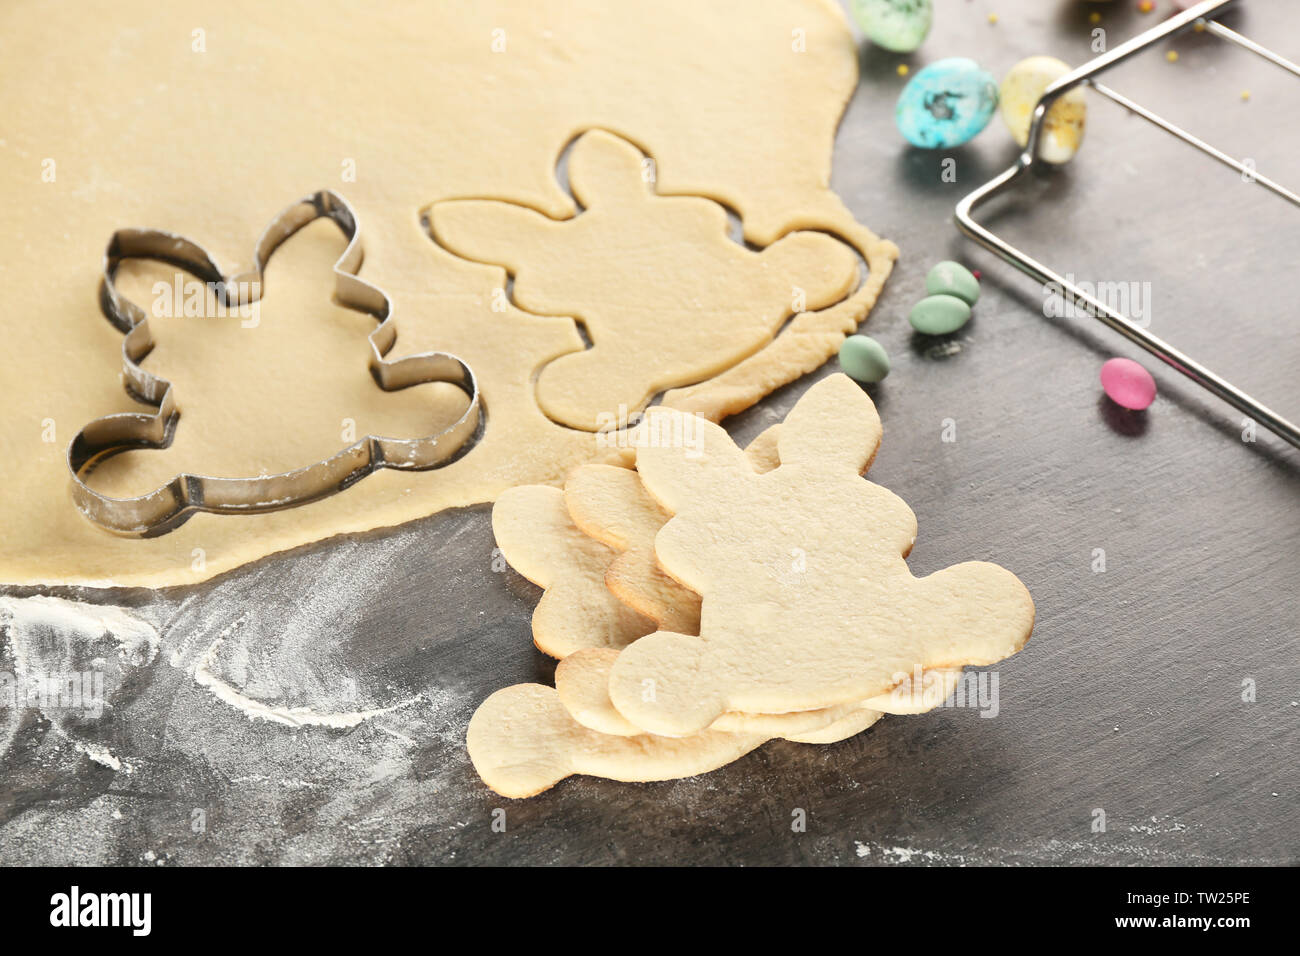 Preparation of Easter cookies - Stock Image